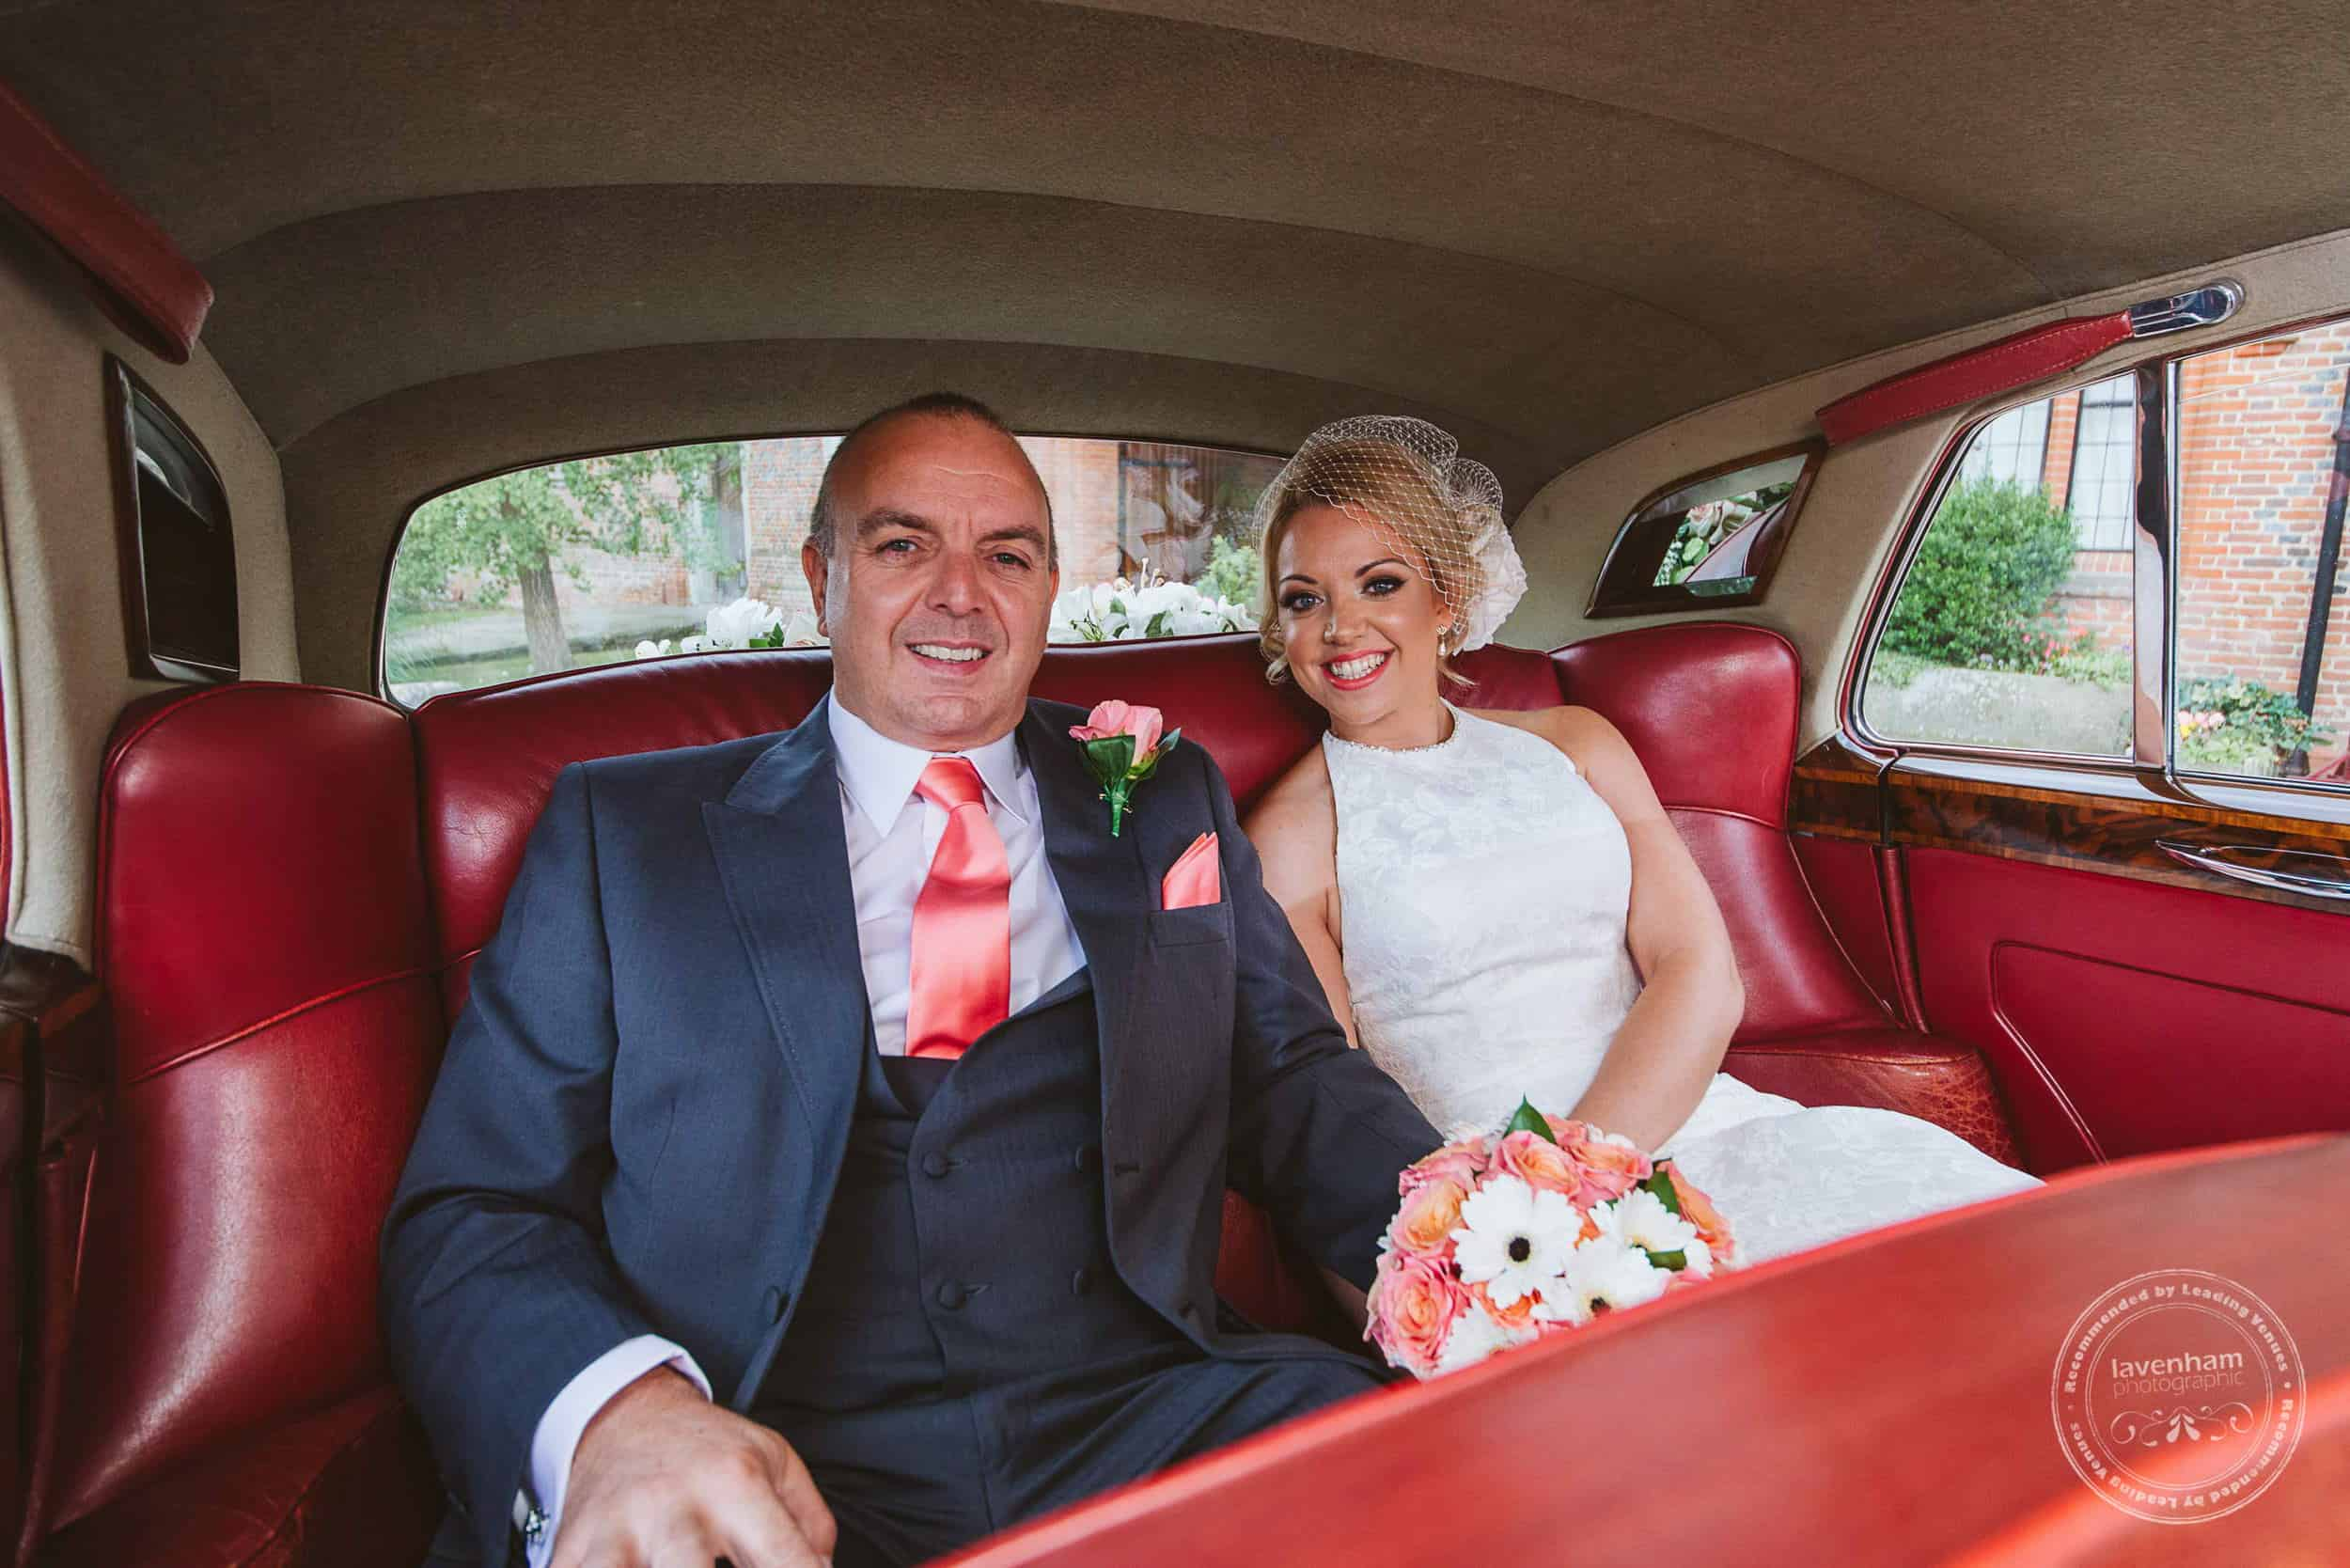 140717 Layer Marney Wedding Photography by Lavenham Photographic 030